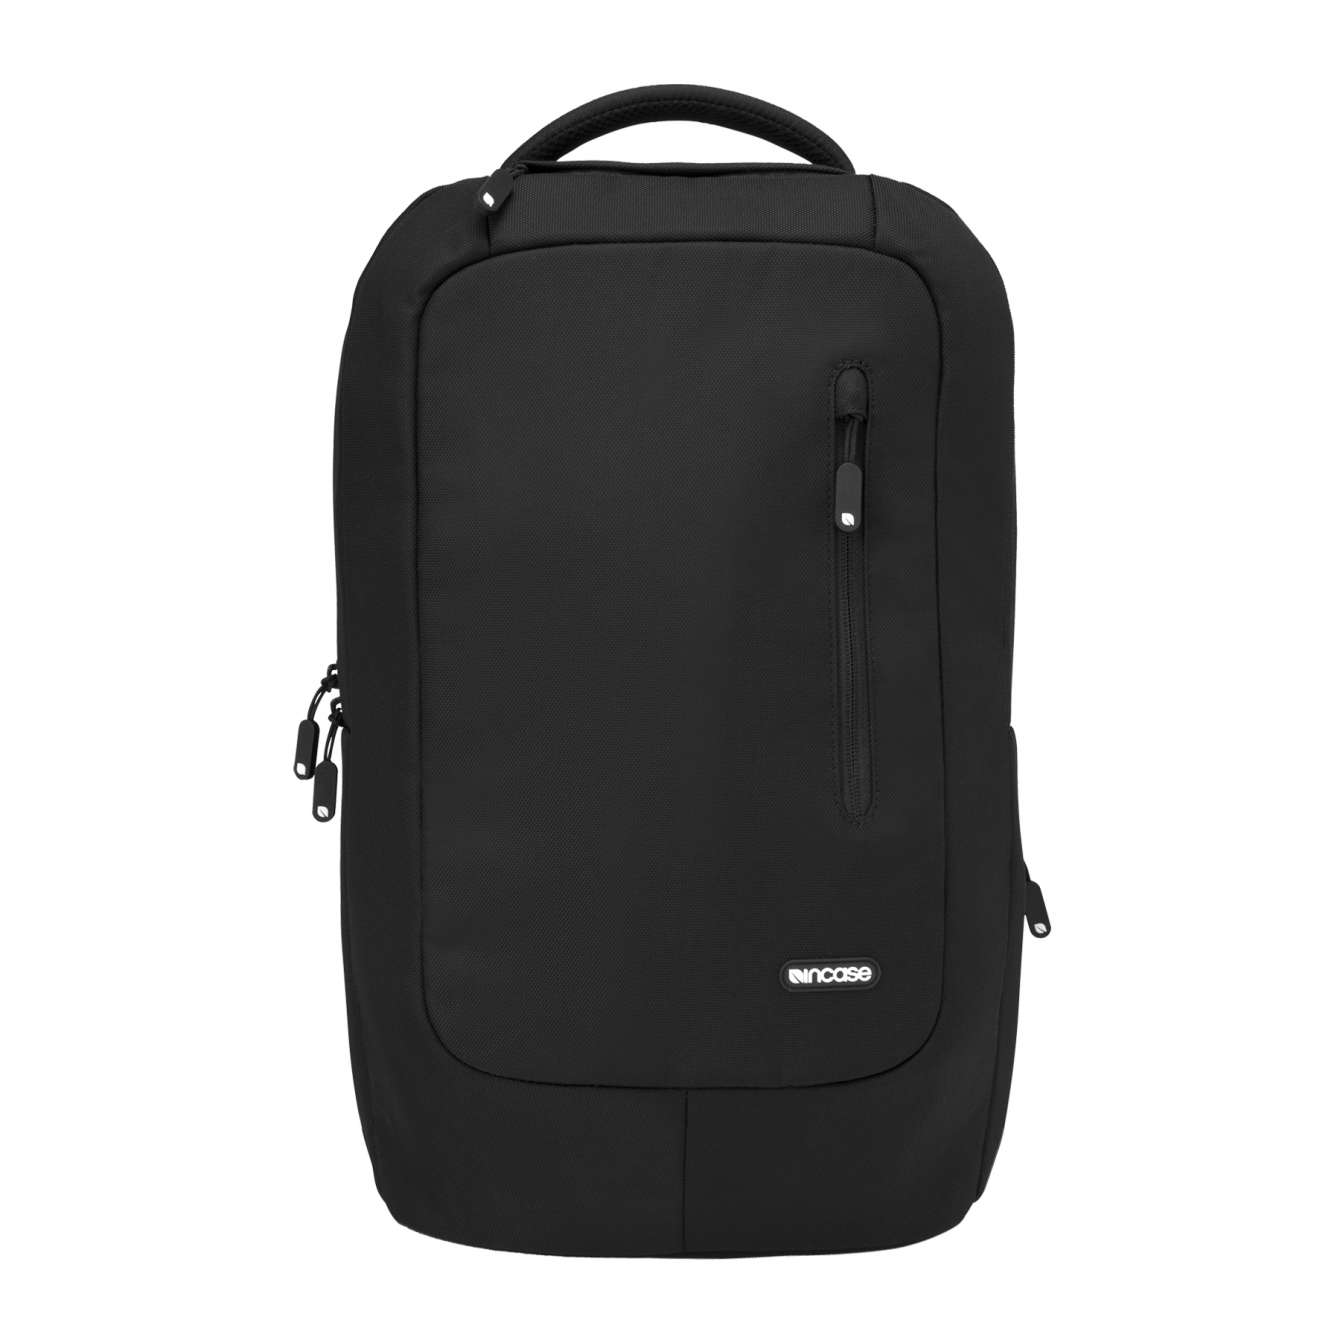 INCASE Compact Backpack for macbook pro 15 กระเป๋า INCASE สีดำ(No tag)